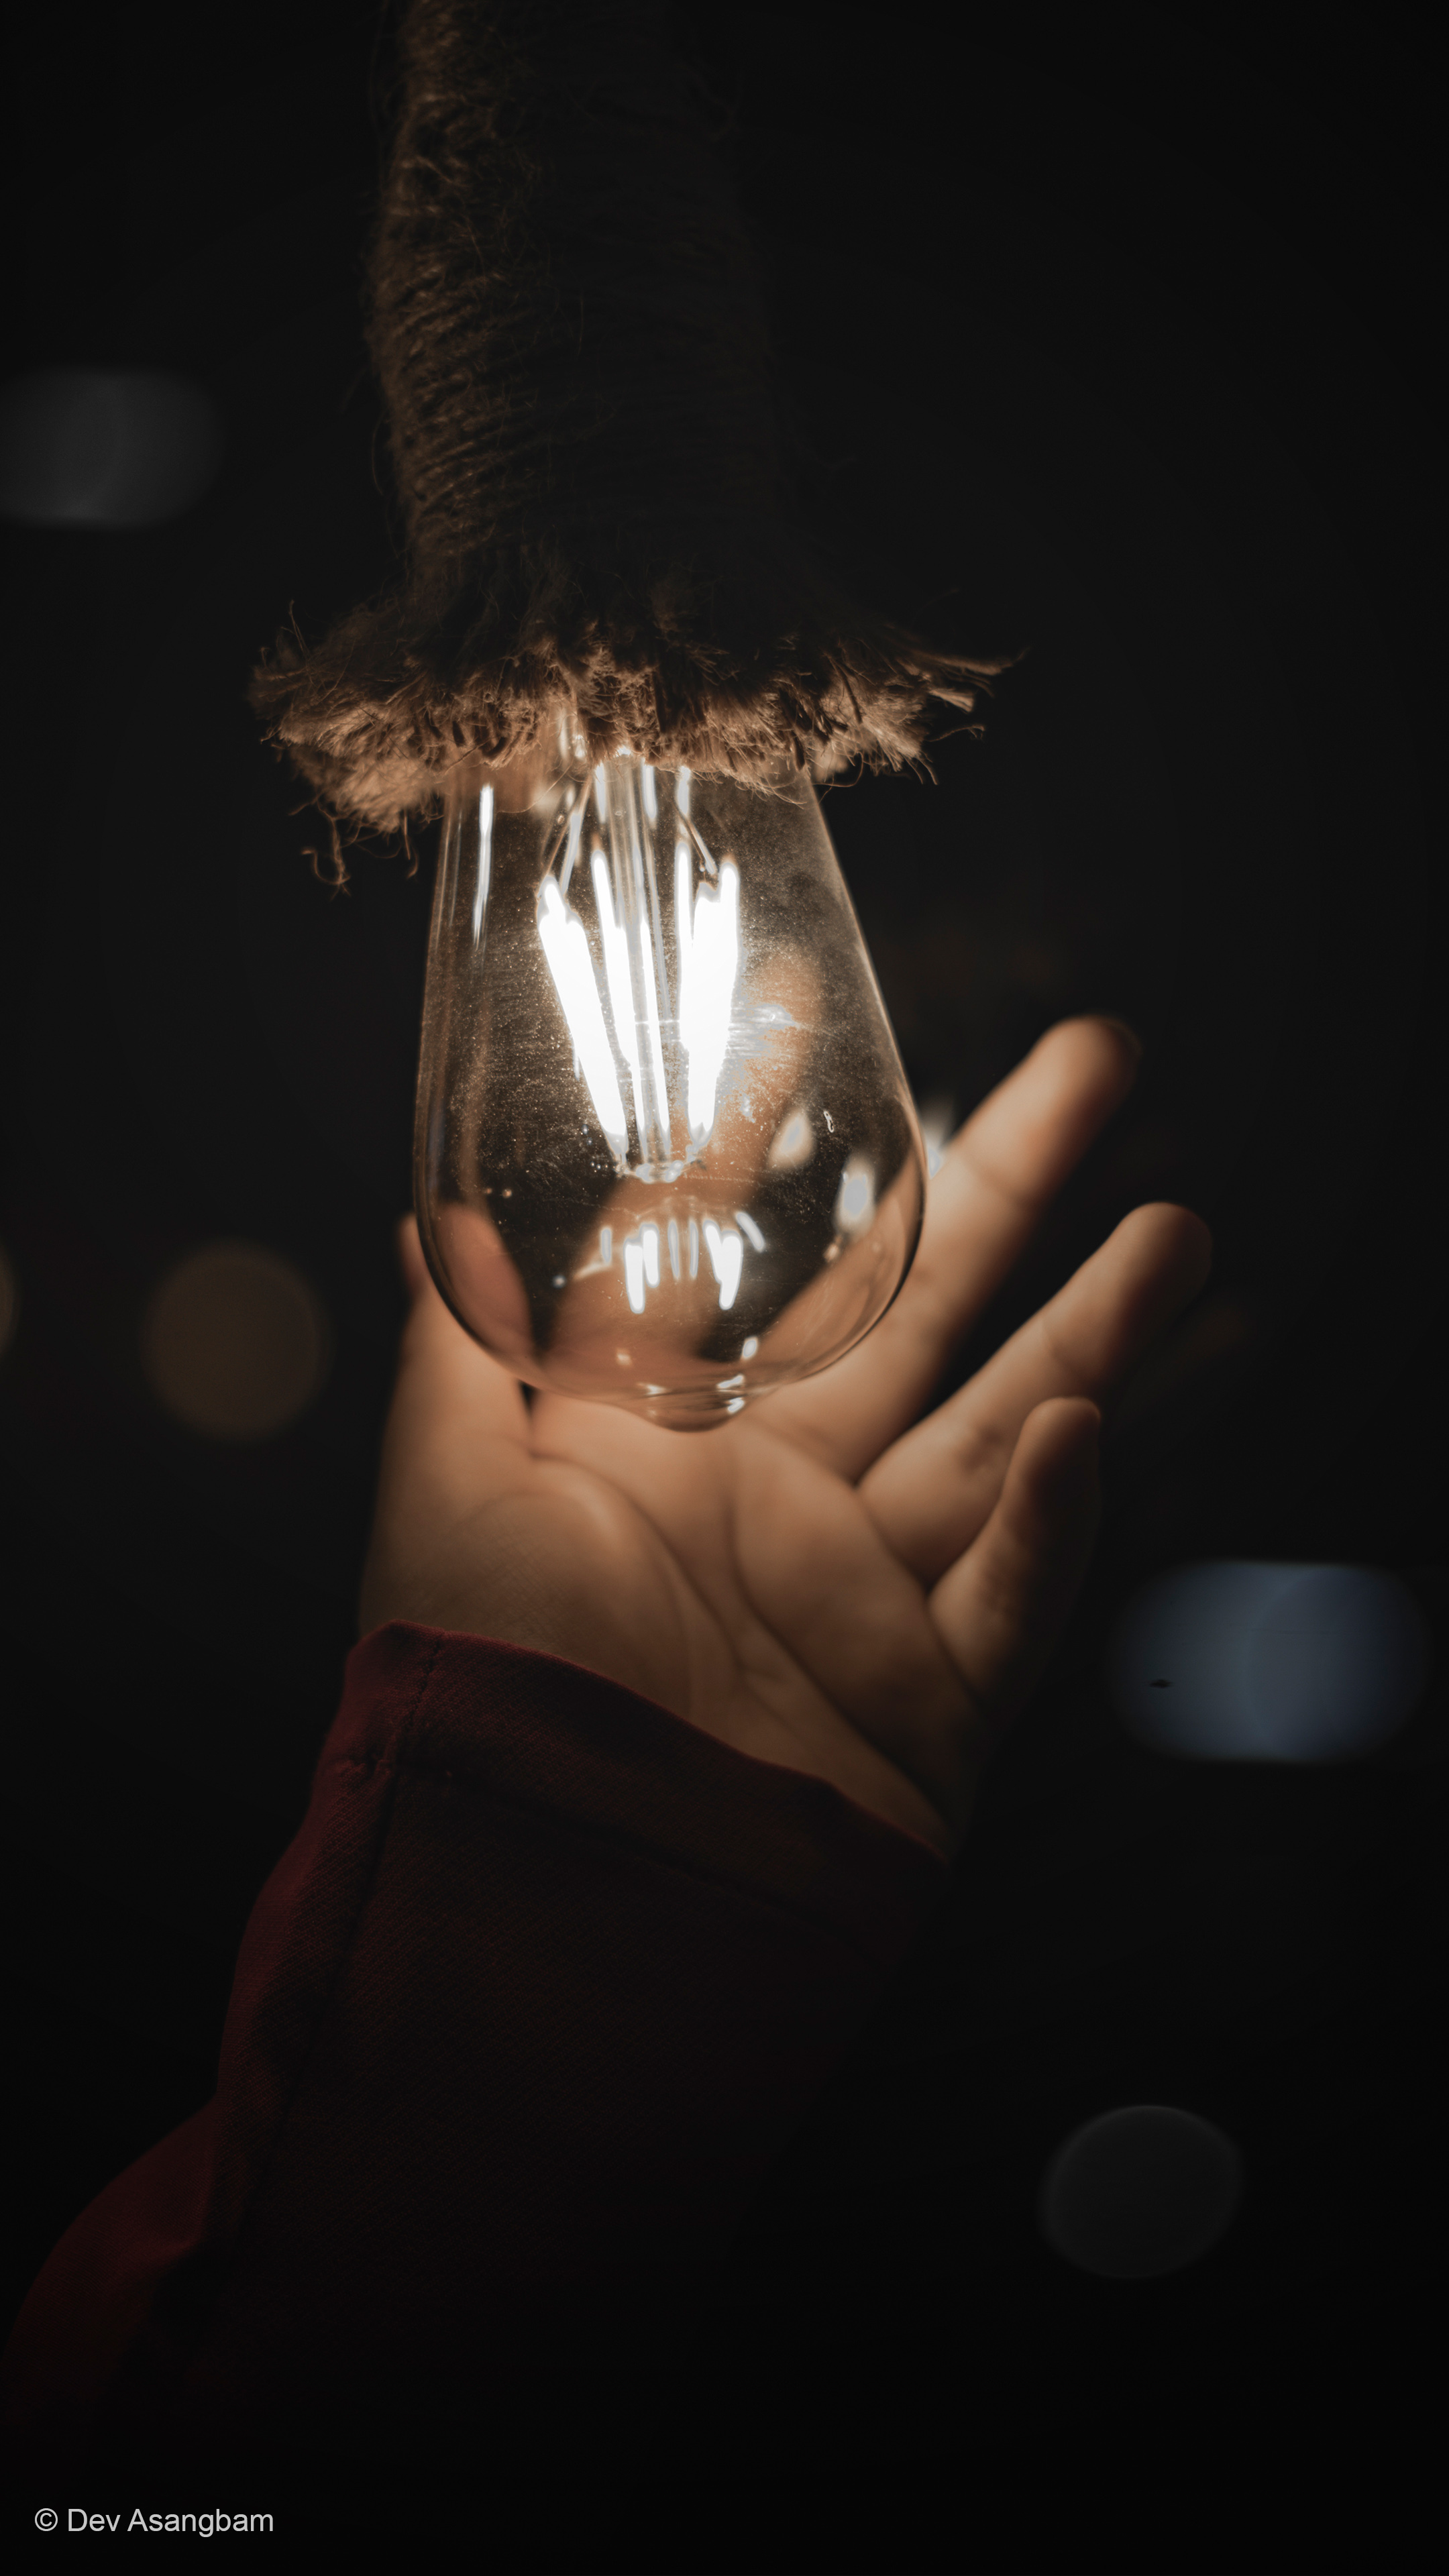 Girl Hand Light Bulb Photography Free 4k Ultra Hd Mobile Wallpaper